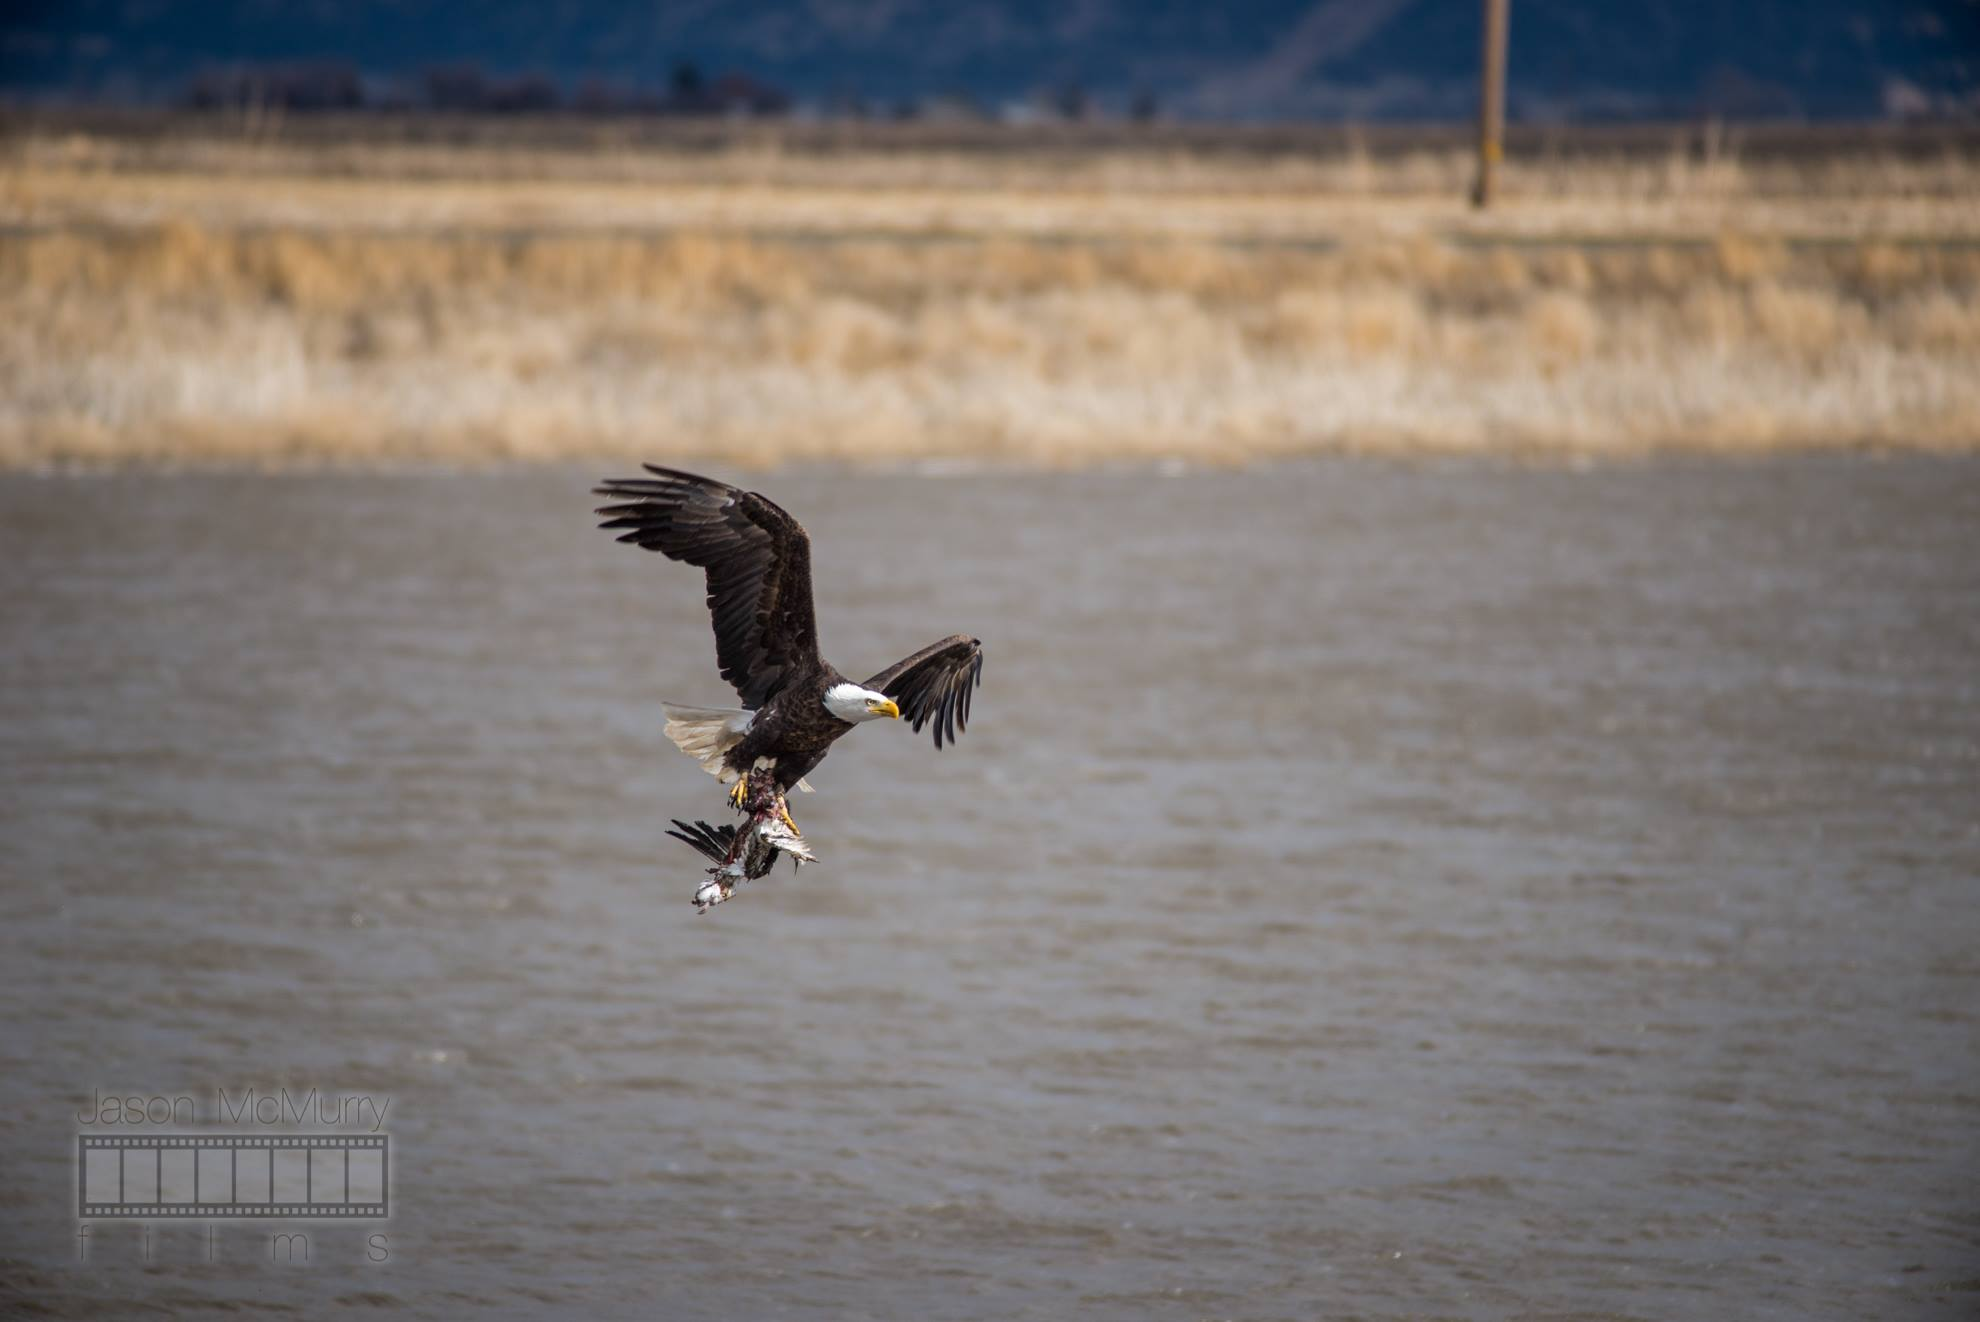 A Bald Eagle and his catch at the Tule Lake NWR.Image by  Jason McMurry